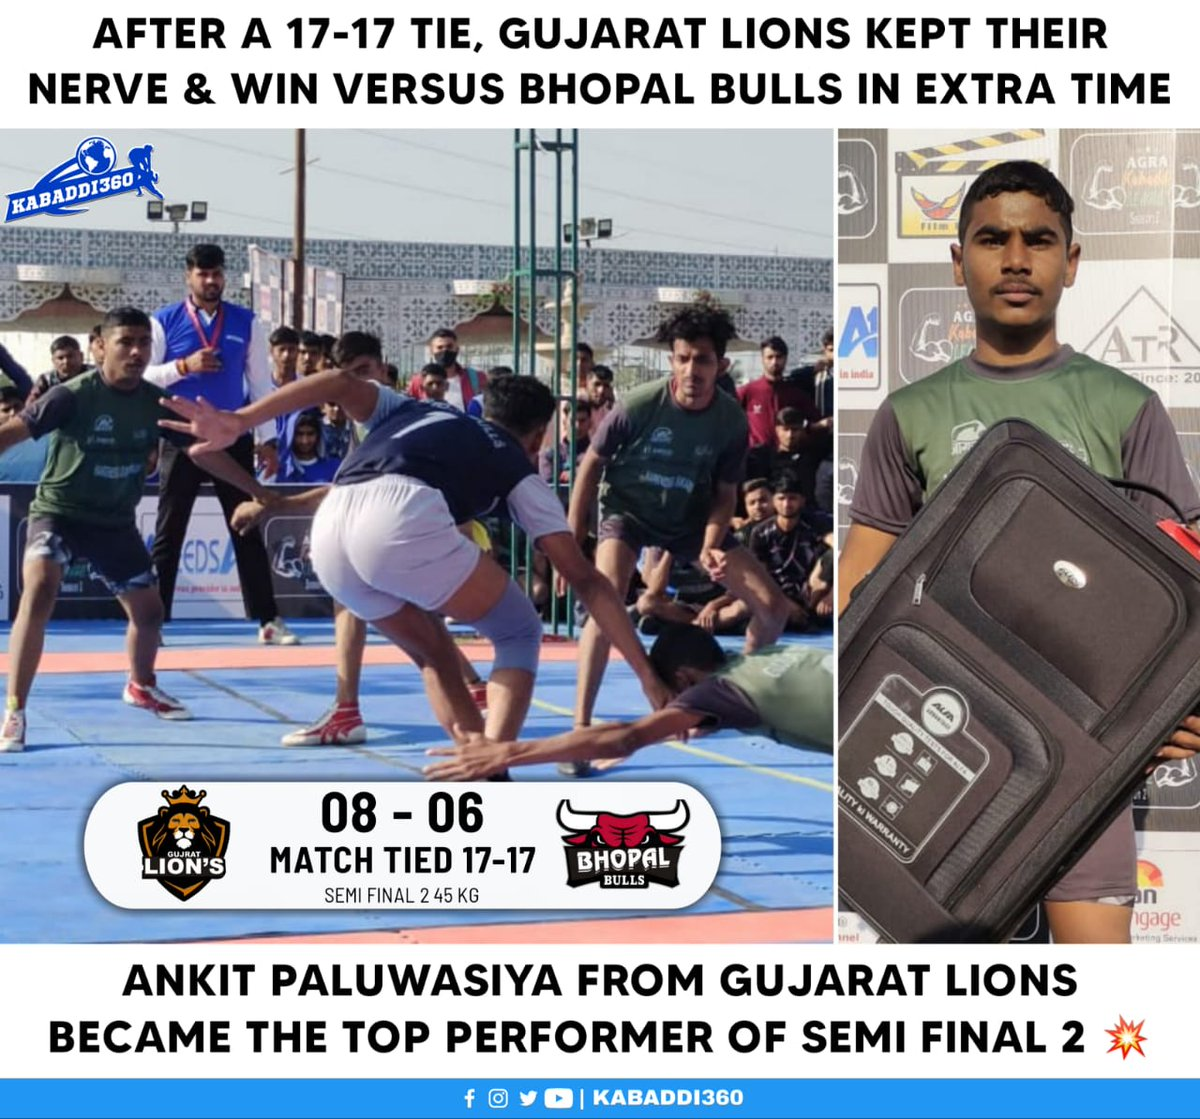 It's Haryana Heroes vs. Gujarat Lions in the Final of 45 kg weight category 😍 Who are you with?  #AgraKabaddiLeague #KabaddiResults #Kabaddi360